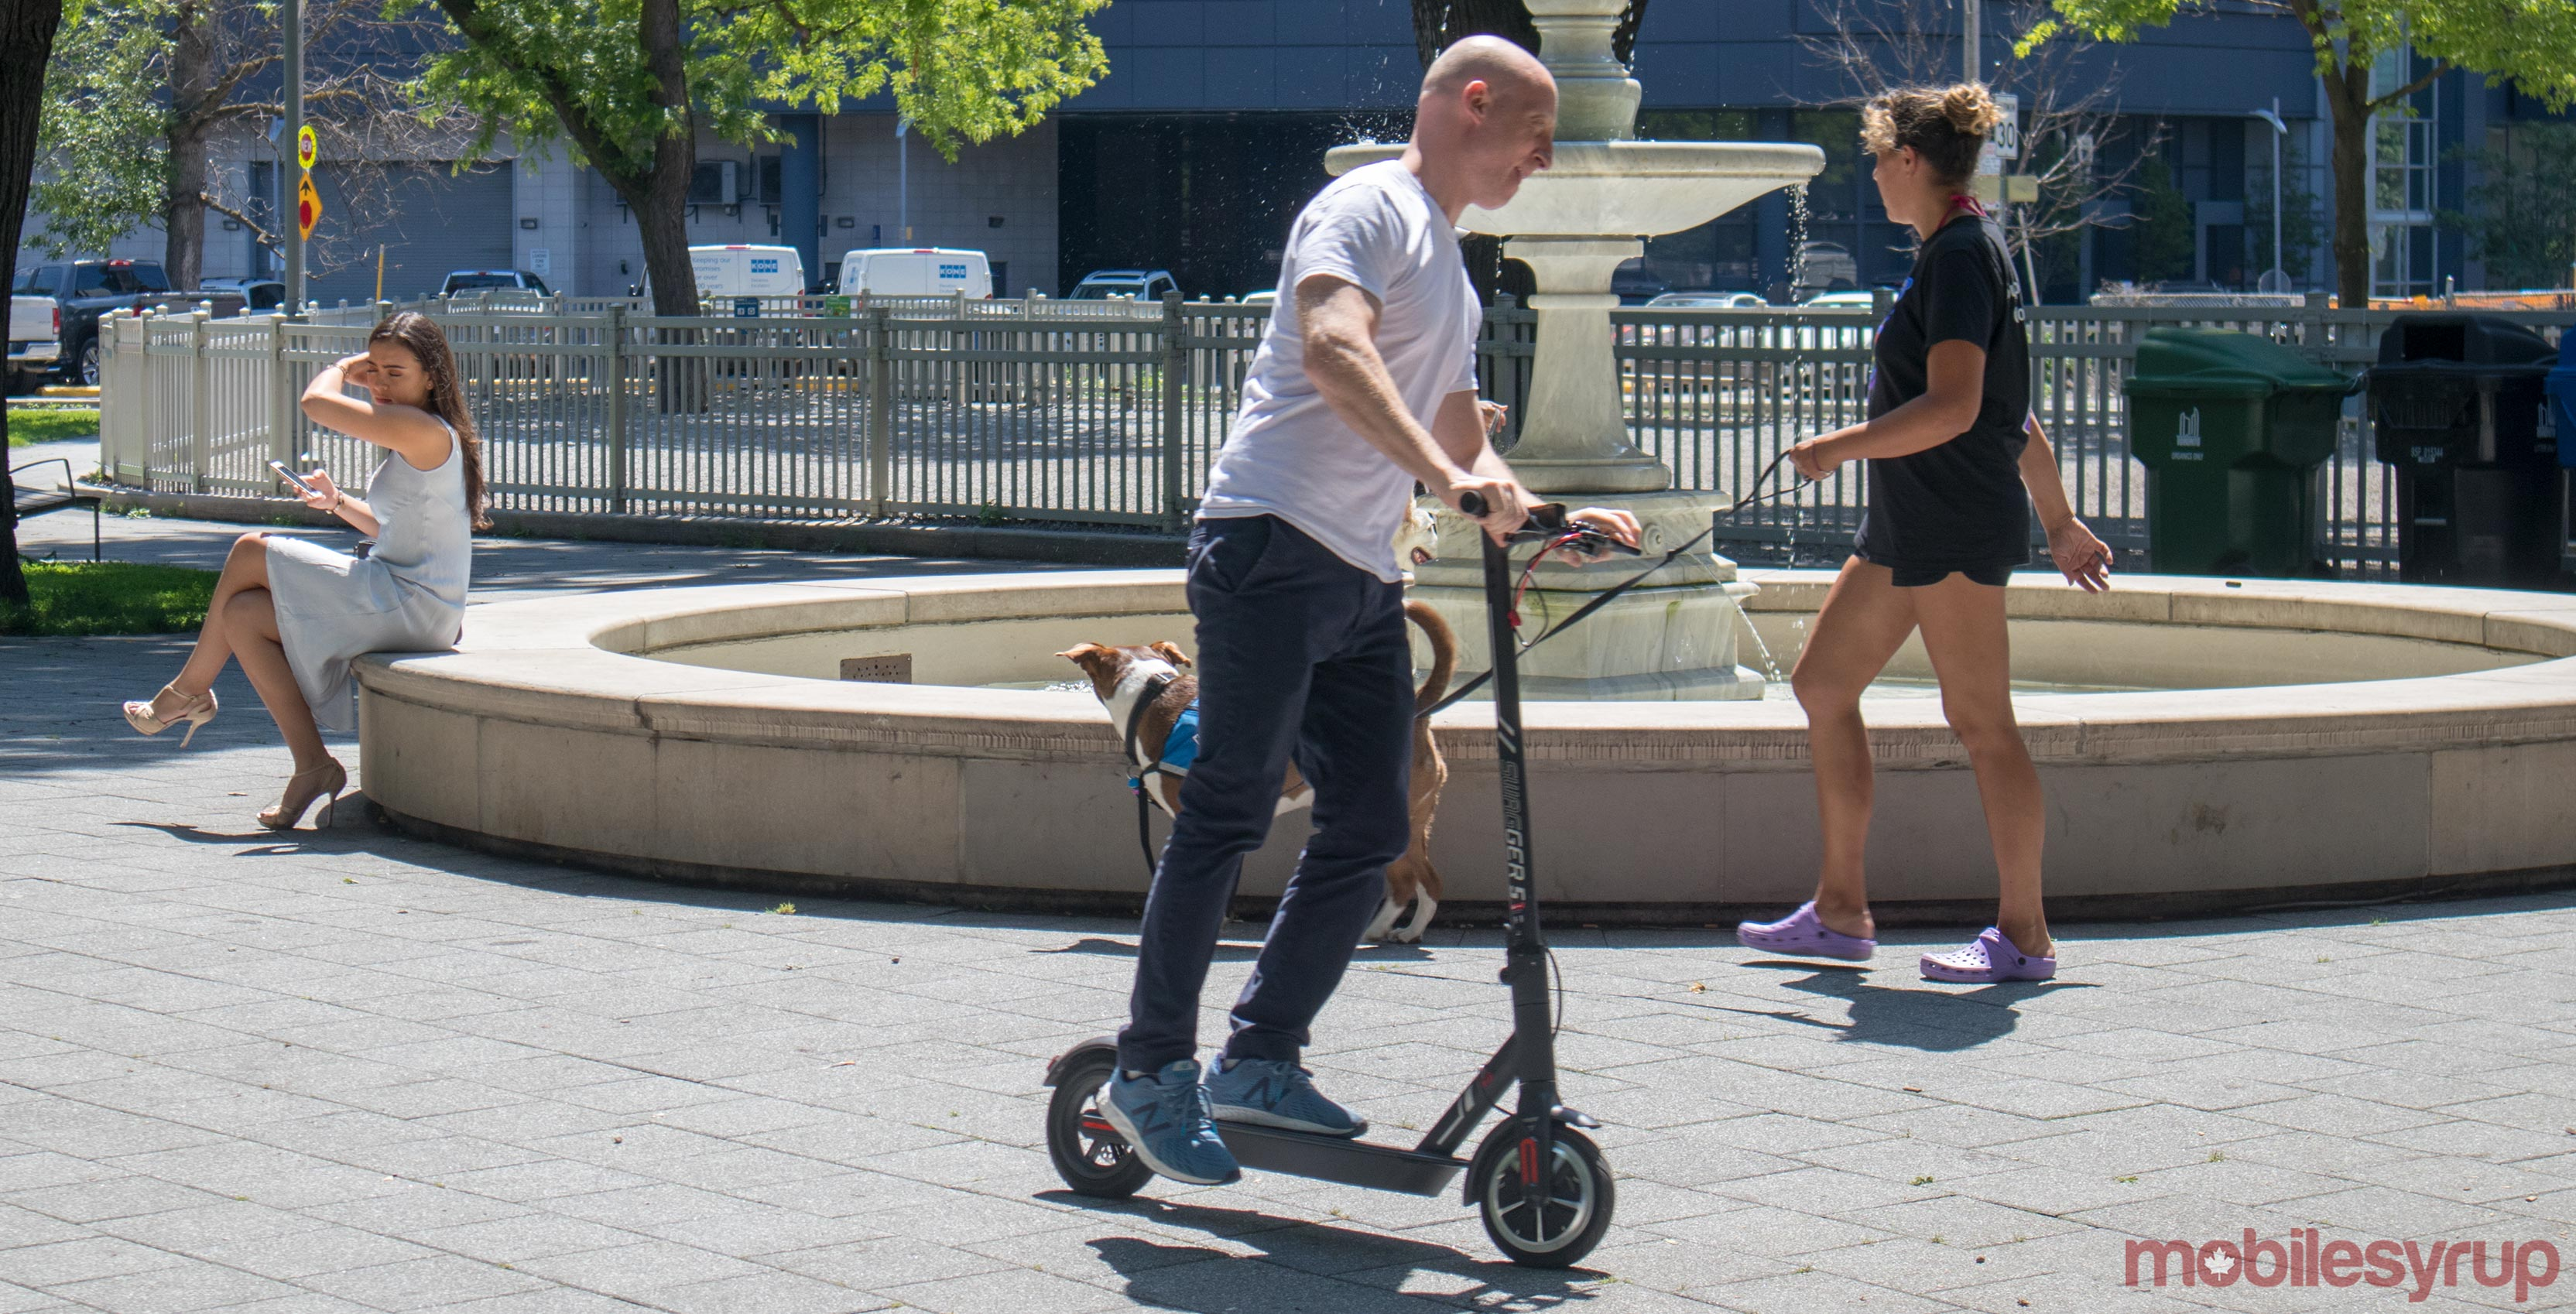 Swagtron scooter